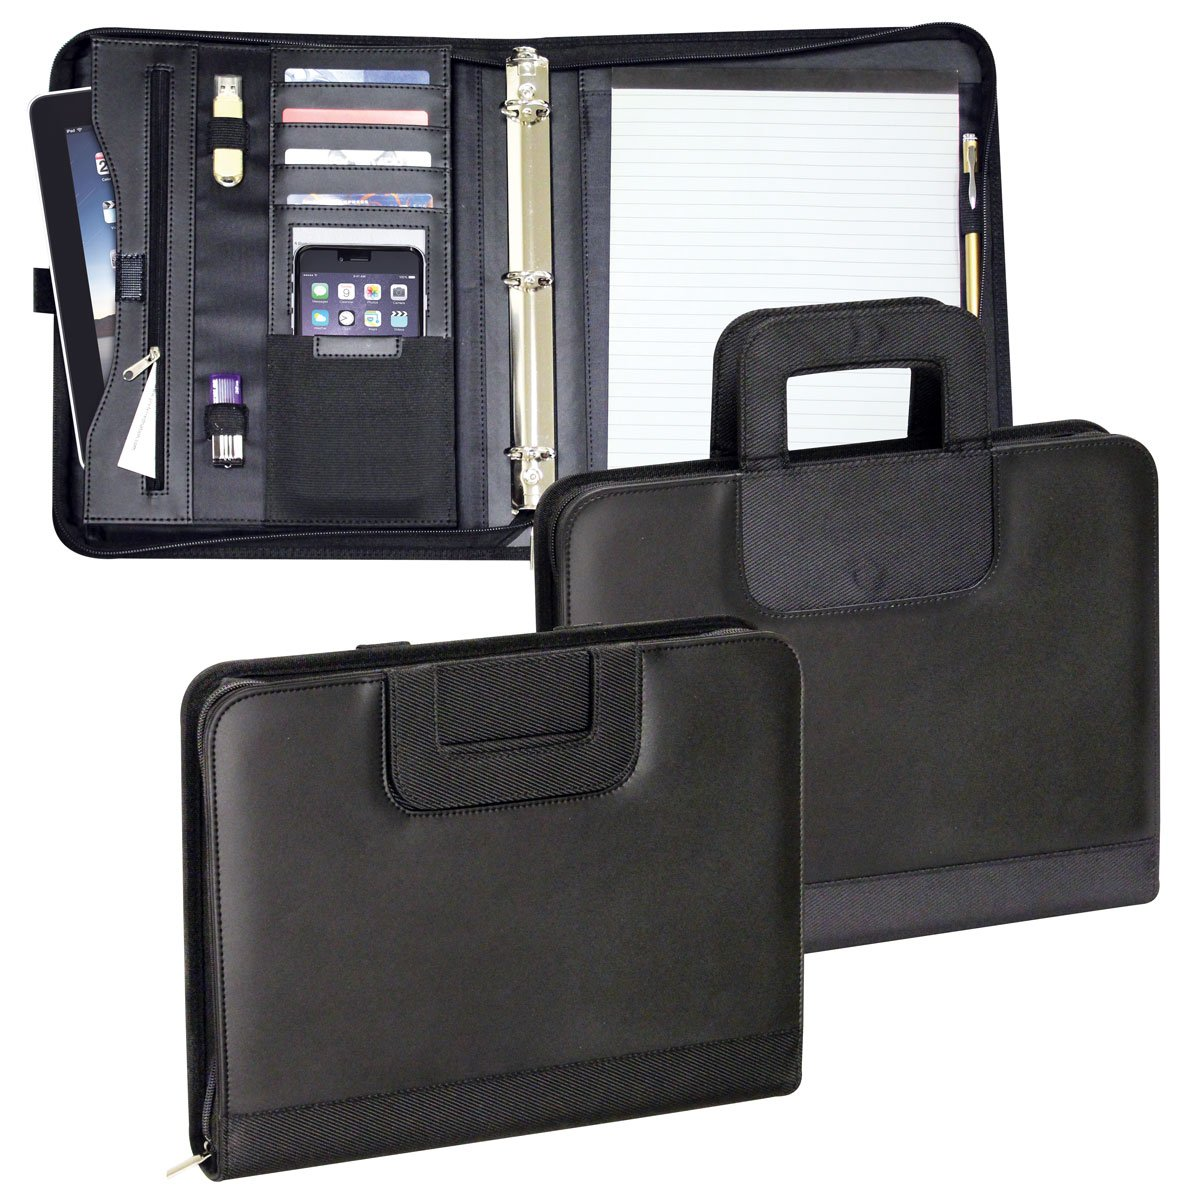 Preferred Nation 3-Ring Briefcase Business Pad Holder (P8132.Blk)